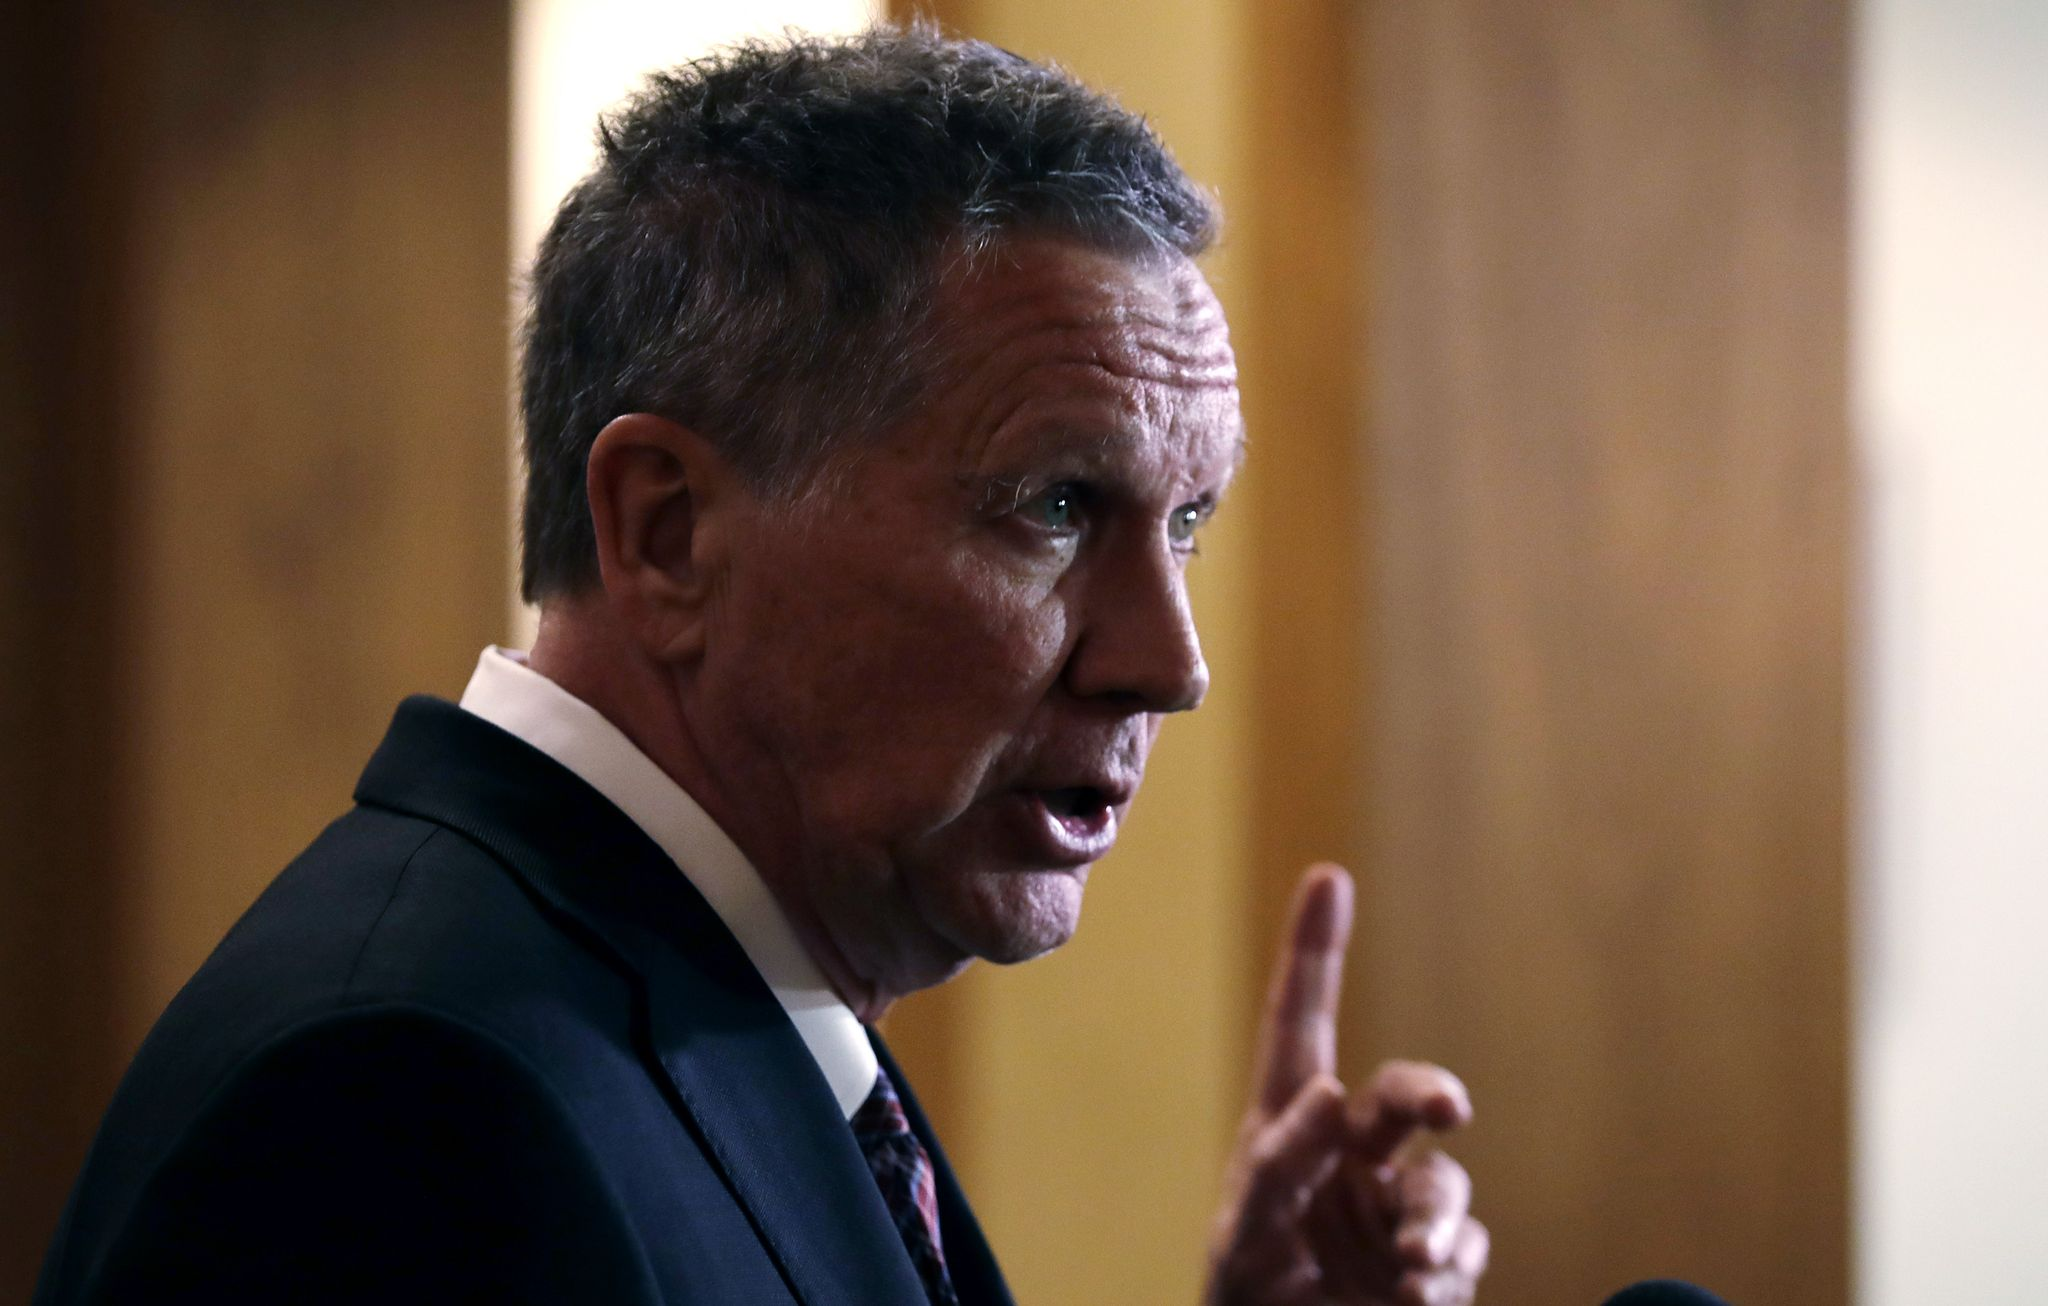 John Kasich sees opening for 2020 third-party or independent run